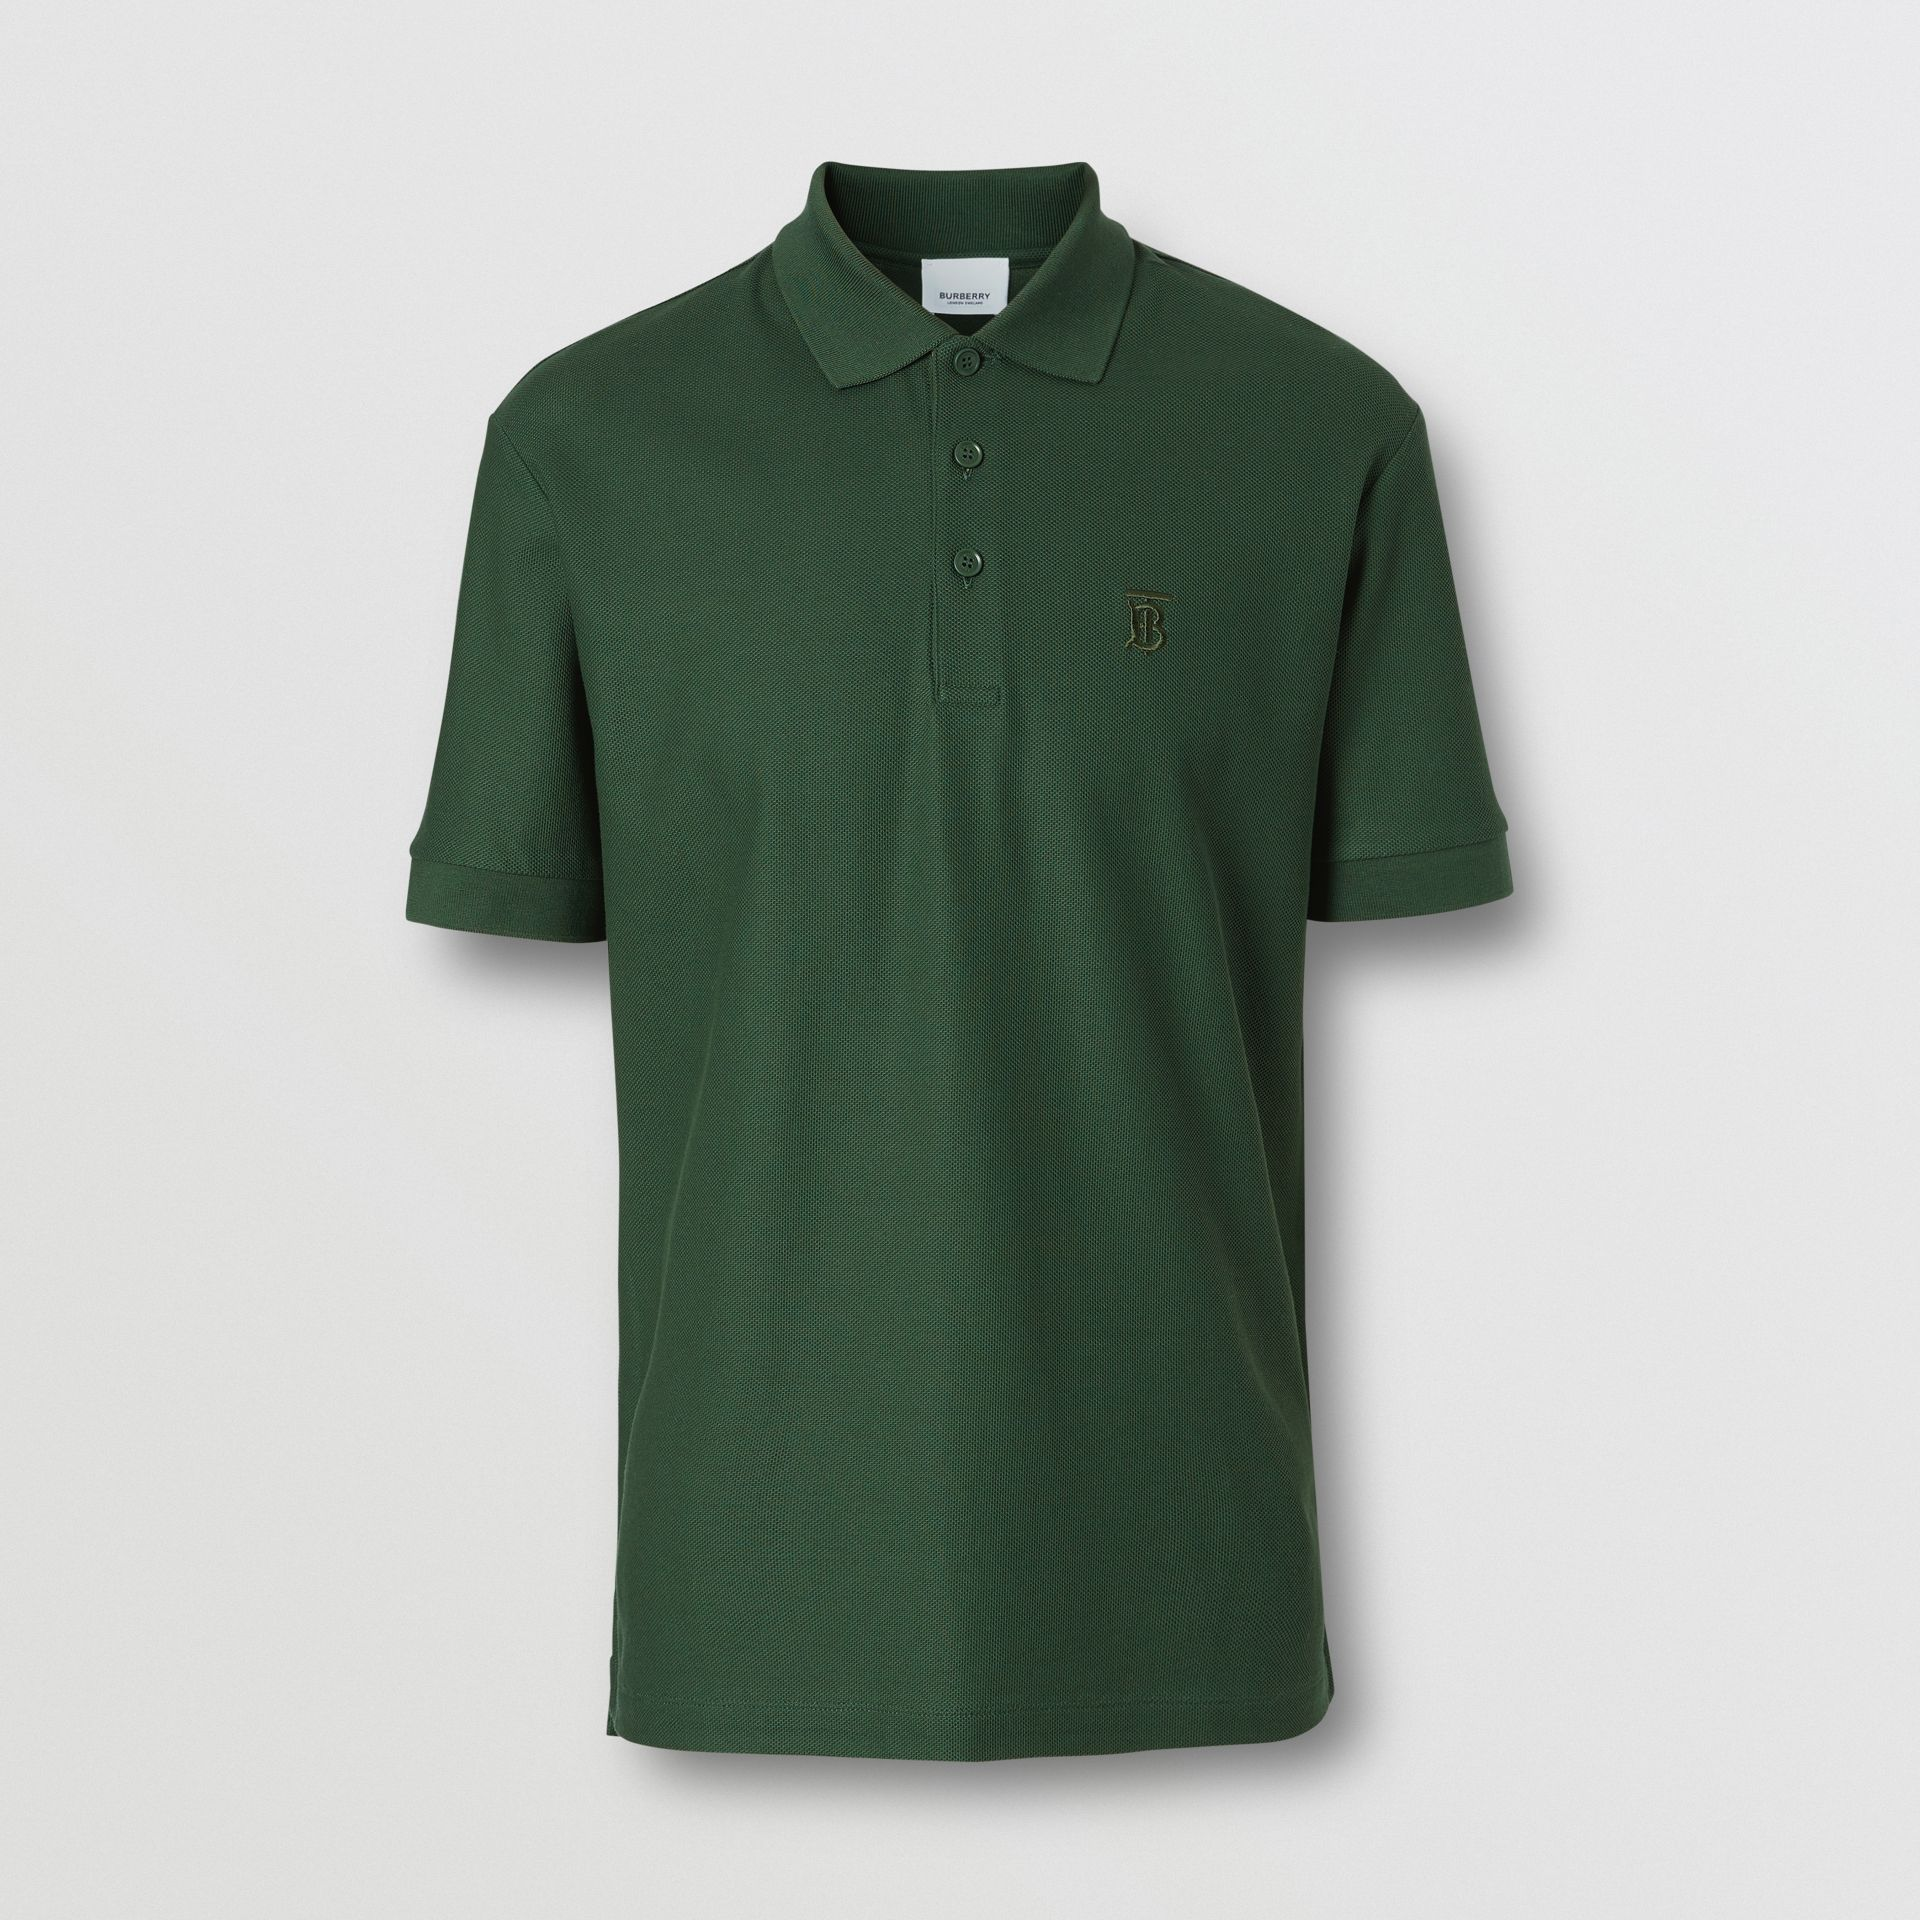 Monogram Motif Cotton Piqué Polo Shirt in Dark Pine Green - Men | Burberry Hong Kong S.A.R - gallery image 3